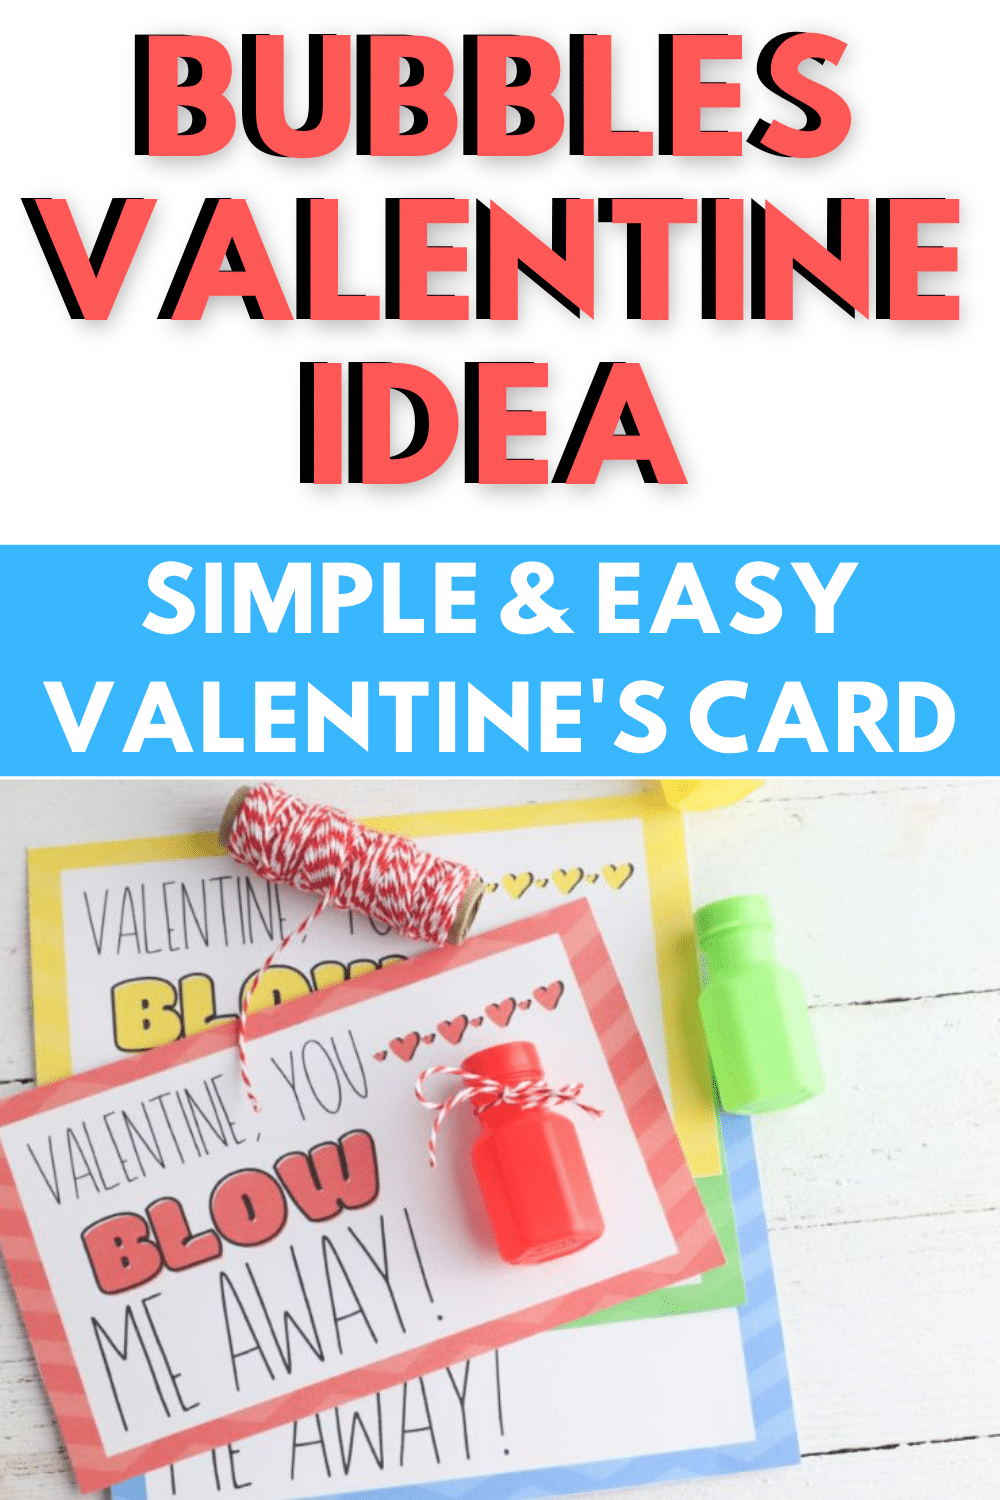 Looking for a super cute non-candy idea for Valentine's Day? This Bubble Valentine (Free Printable) is certain to be hit! #valentinesday #freeprintable #bubbles #noncandy #valentine via @wondermomwannab